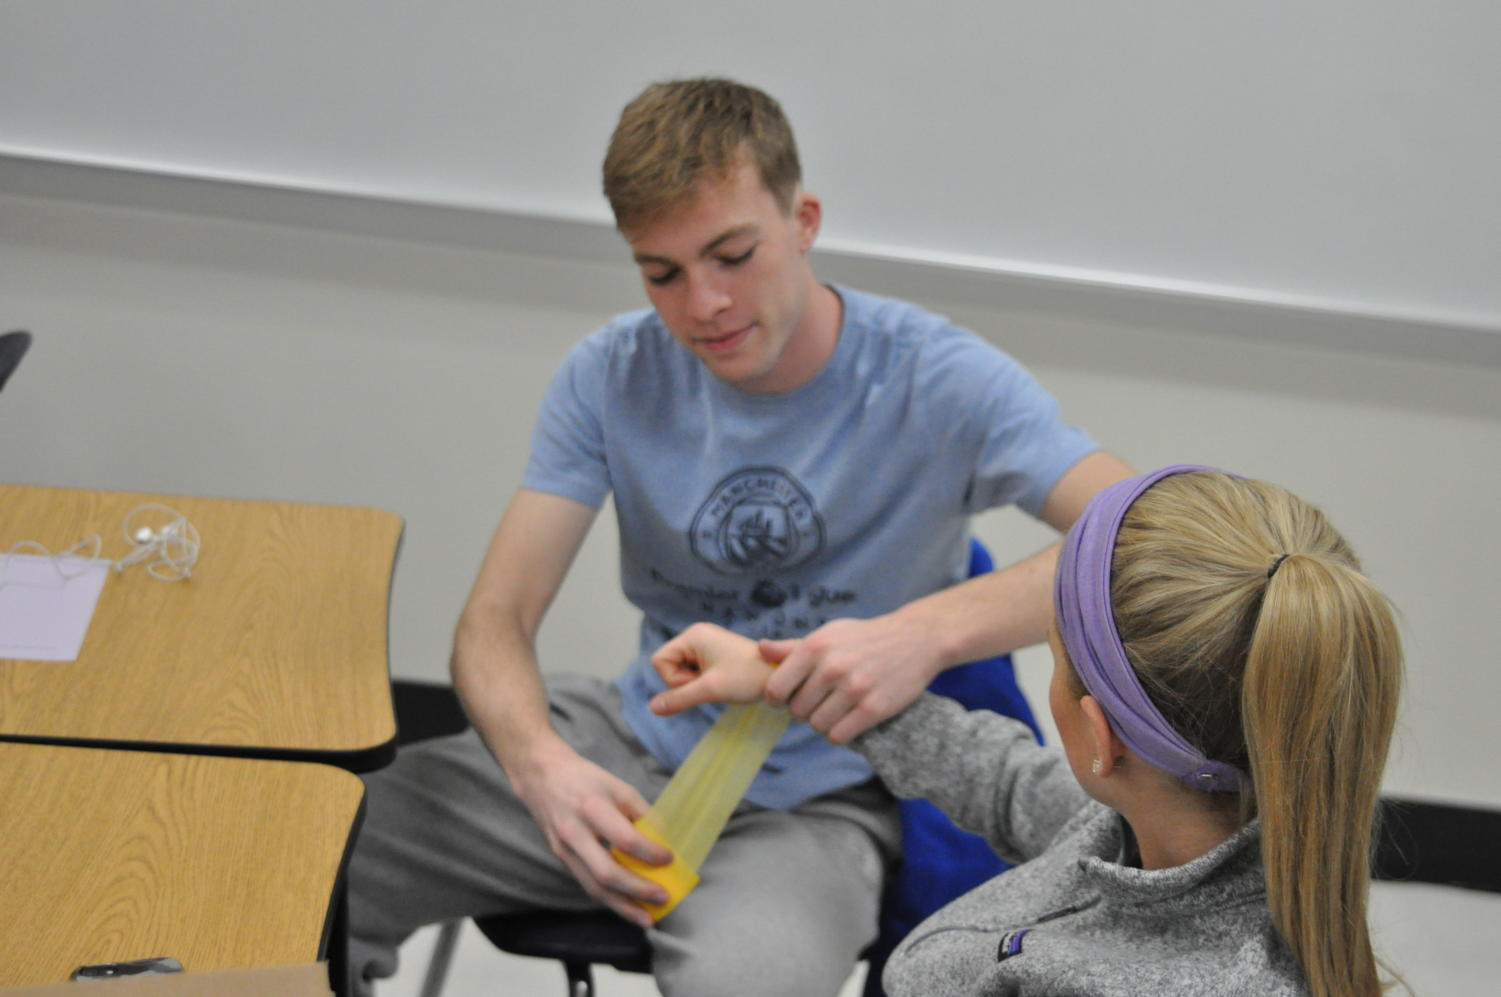 Senior Tavis Cameron practices taping the arm of senior Emily McLaughlin during Sports Medicine. In February, Cameron will travel to Paraguay as a foreign exchange student.